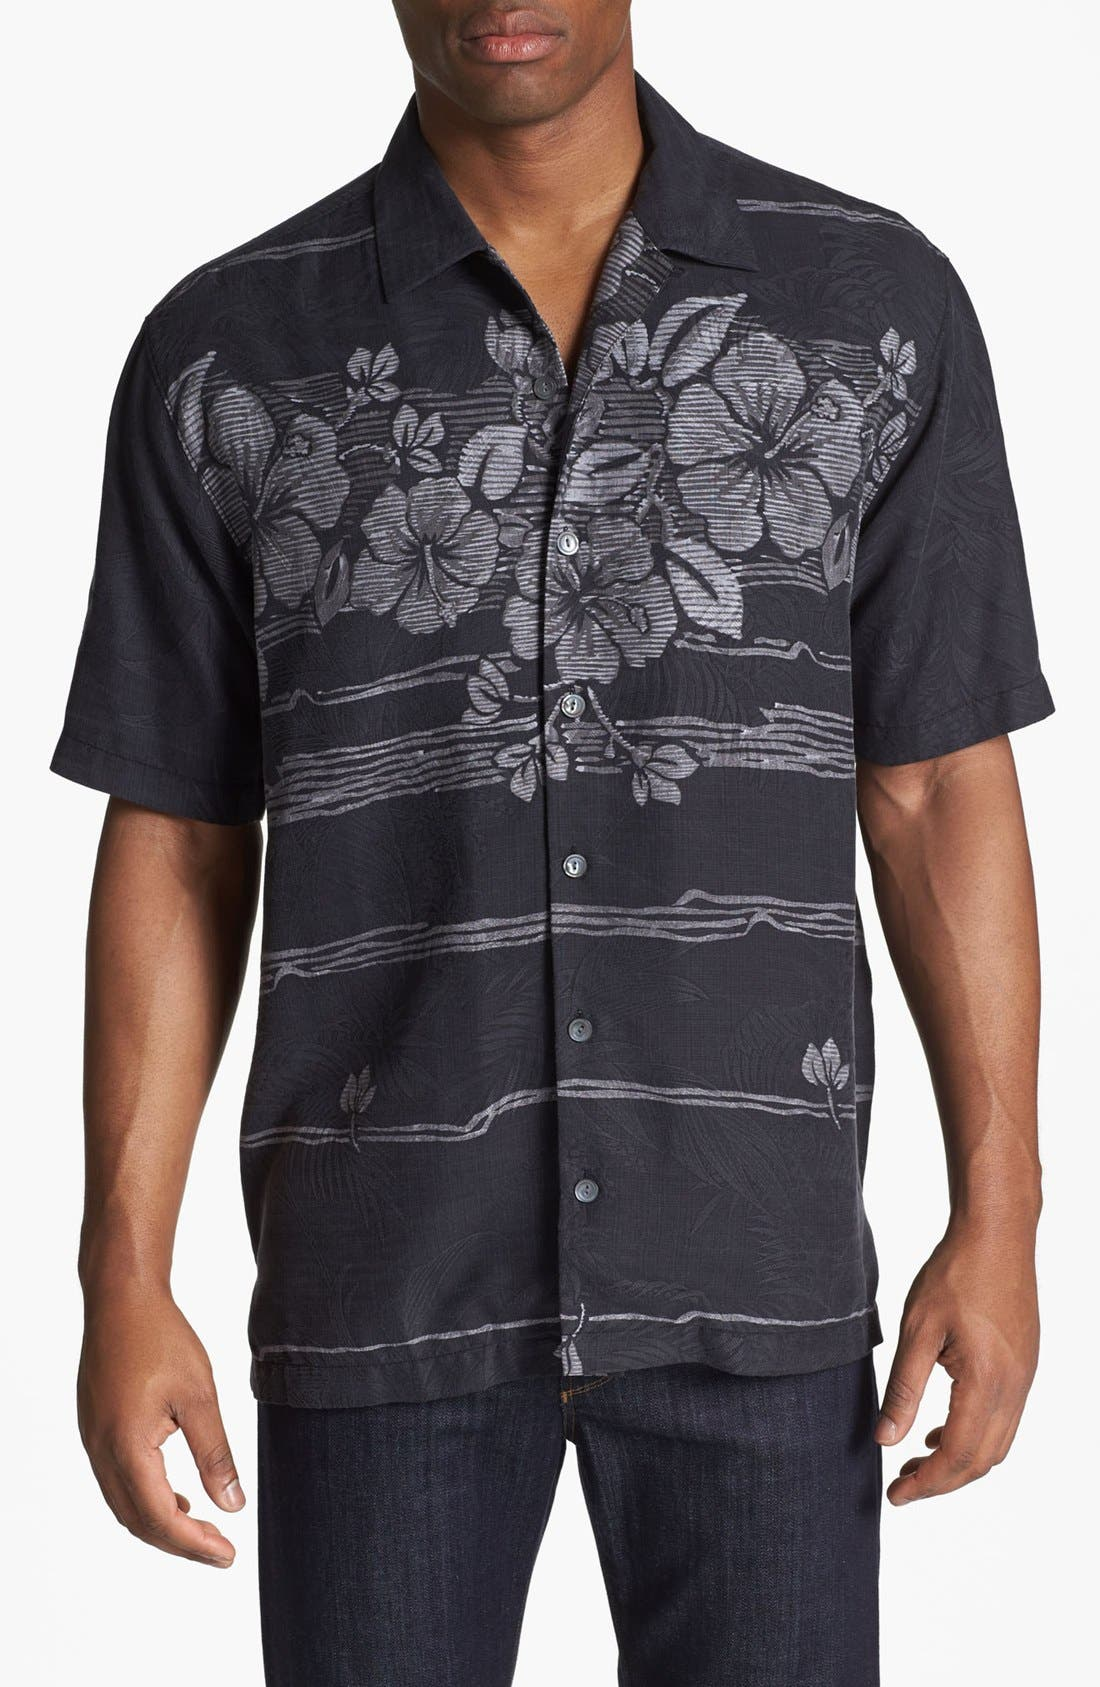 Alternate Image 1 Selected - Tommy Bahama 'Hibiscus Fade Away' Campshirt